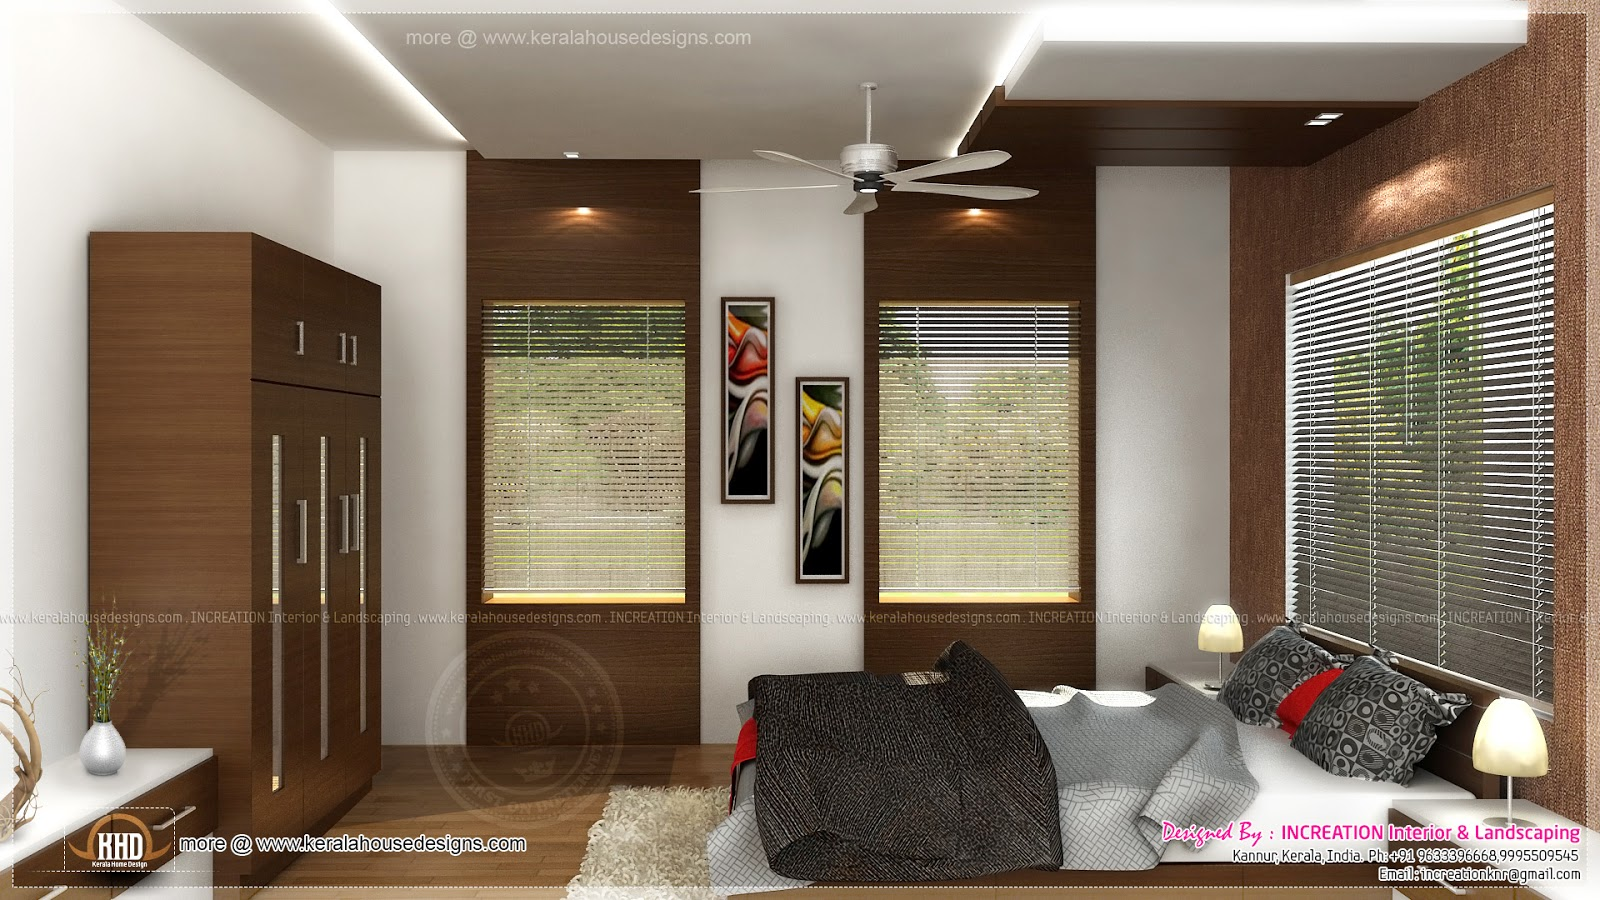 Interior designs from kannur kerala home kerala plans for Picture of interior designs of house